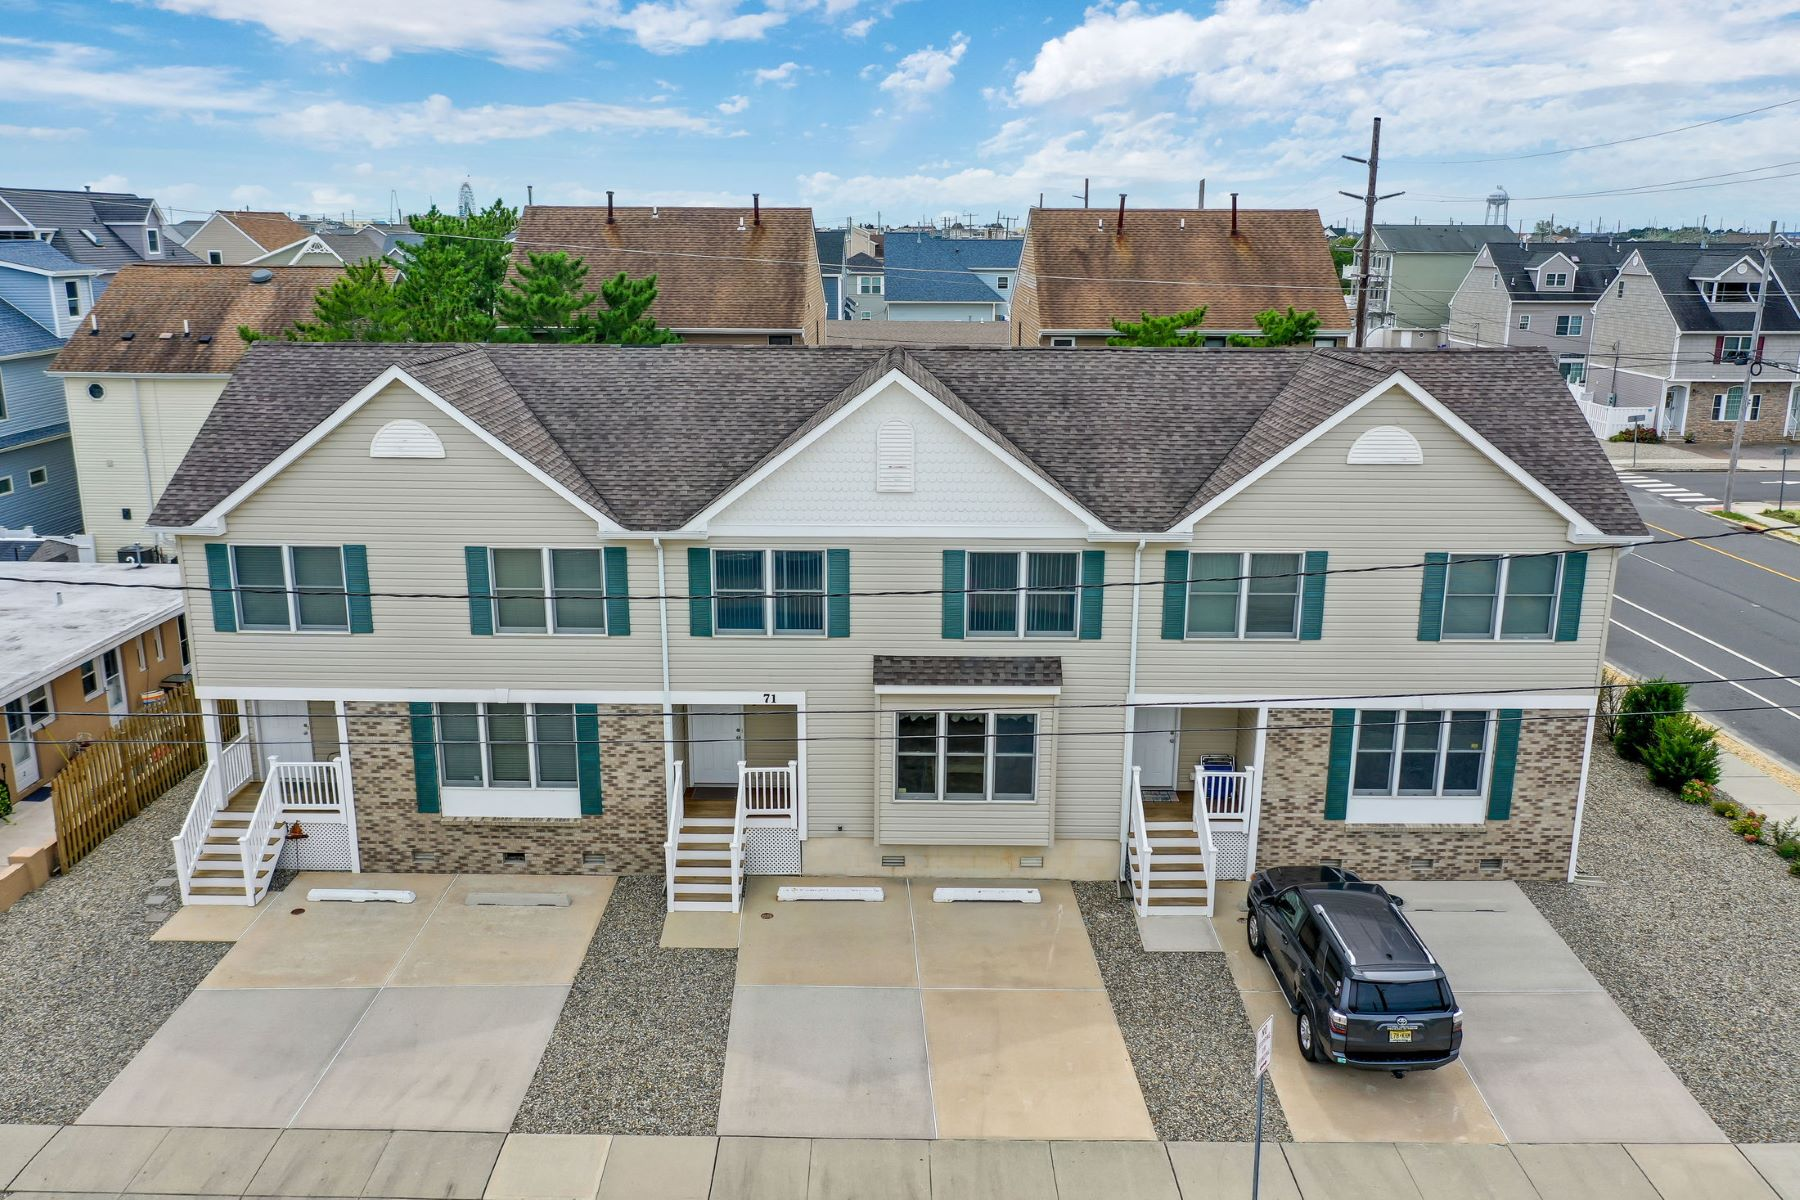 townhouses for Active at Pristine Ocean Block Townhouse 71 Fielder Avenue, Unit #2 Ortley Beach, New Jersey 08751 United States